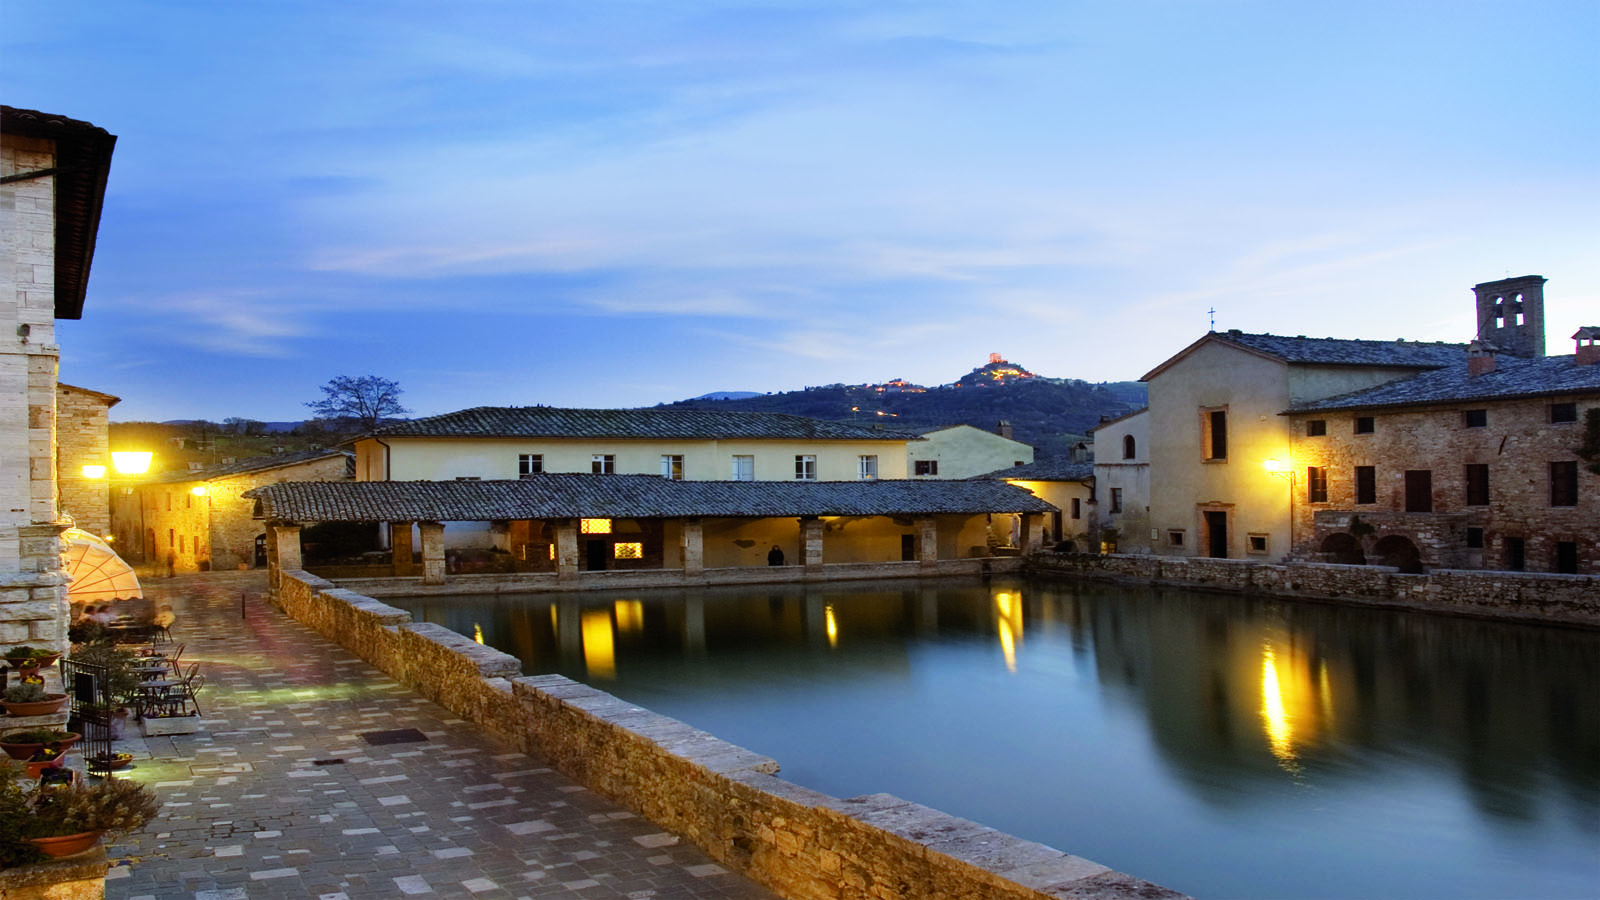 http://www.house-and-houses-tuscany.com/bella-casa/wp-content/uploads/sites/2/2013/12/bagno-vignoni-31.jpg